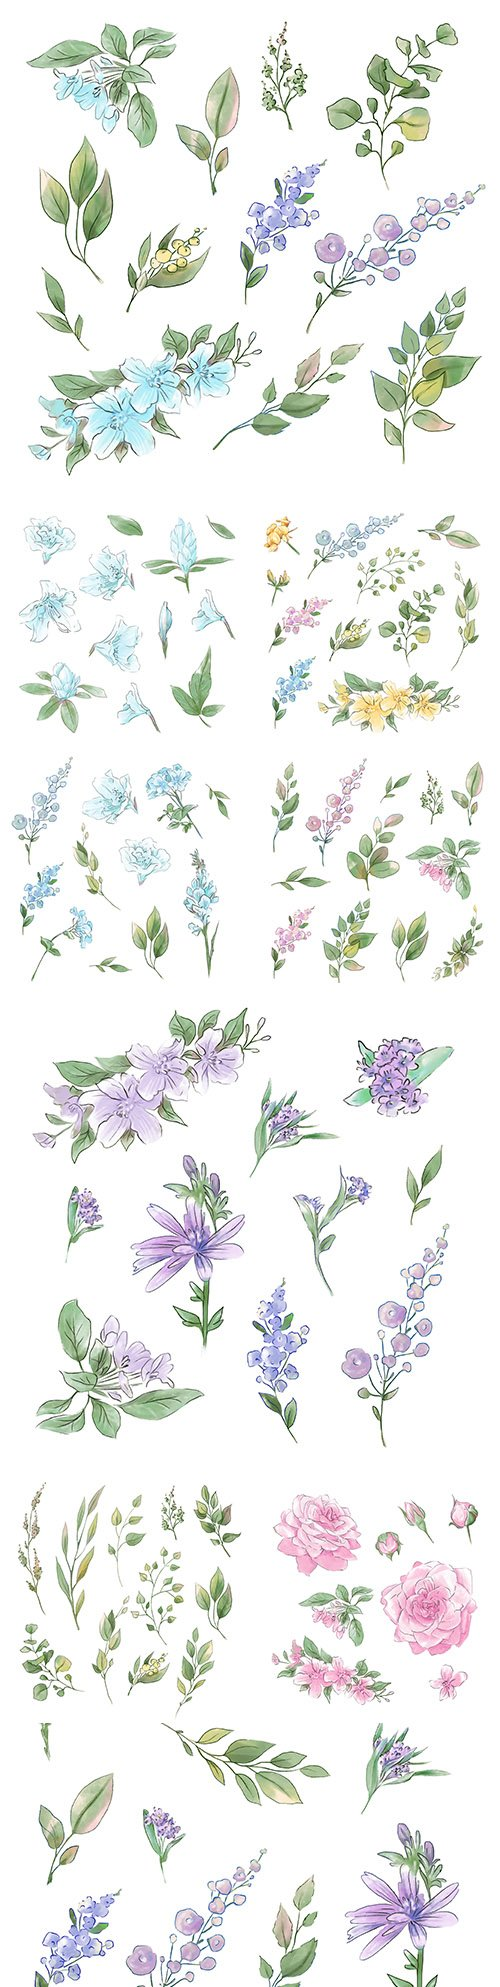 Flowers and twigs with leaves watercolor design illustrations